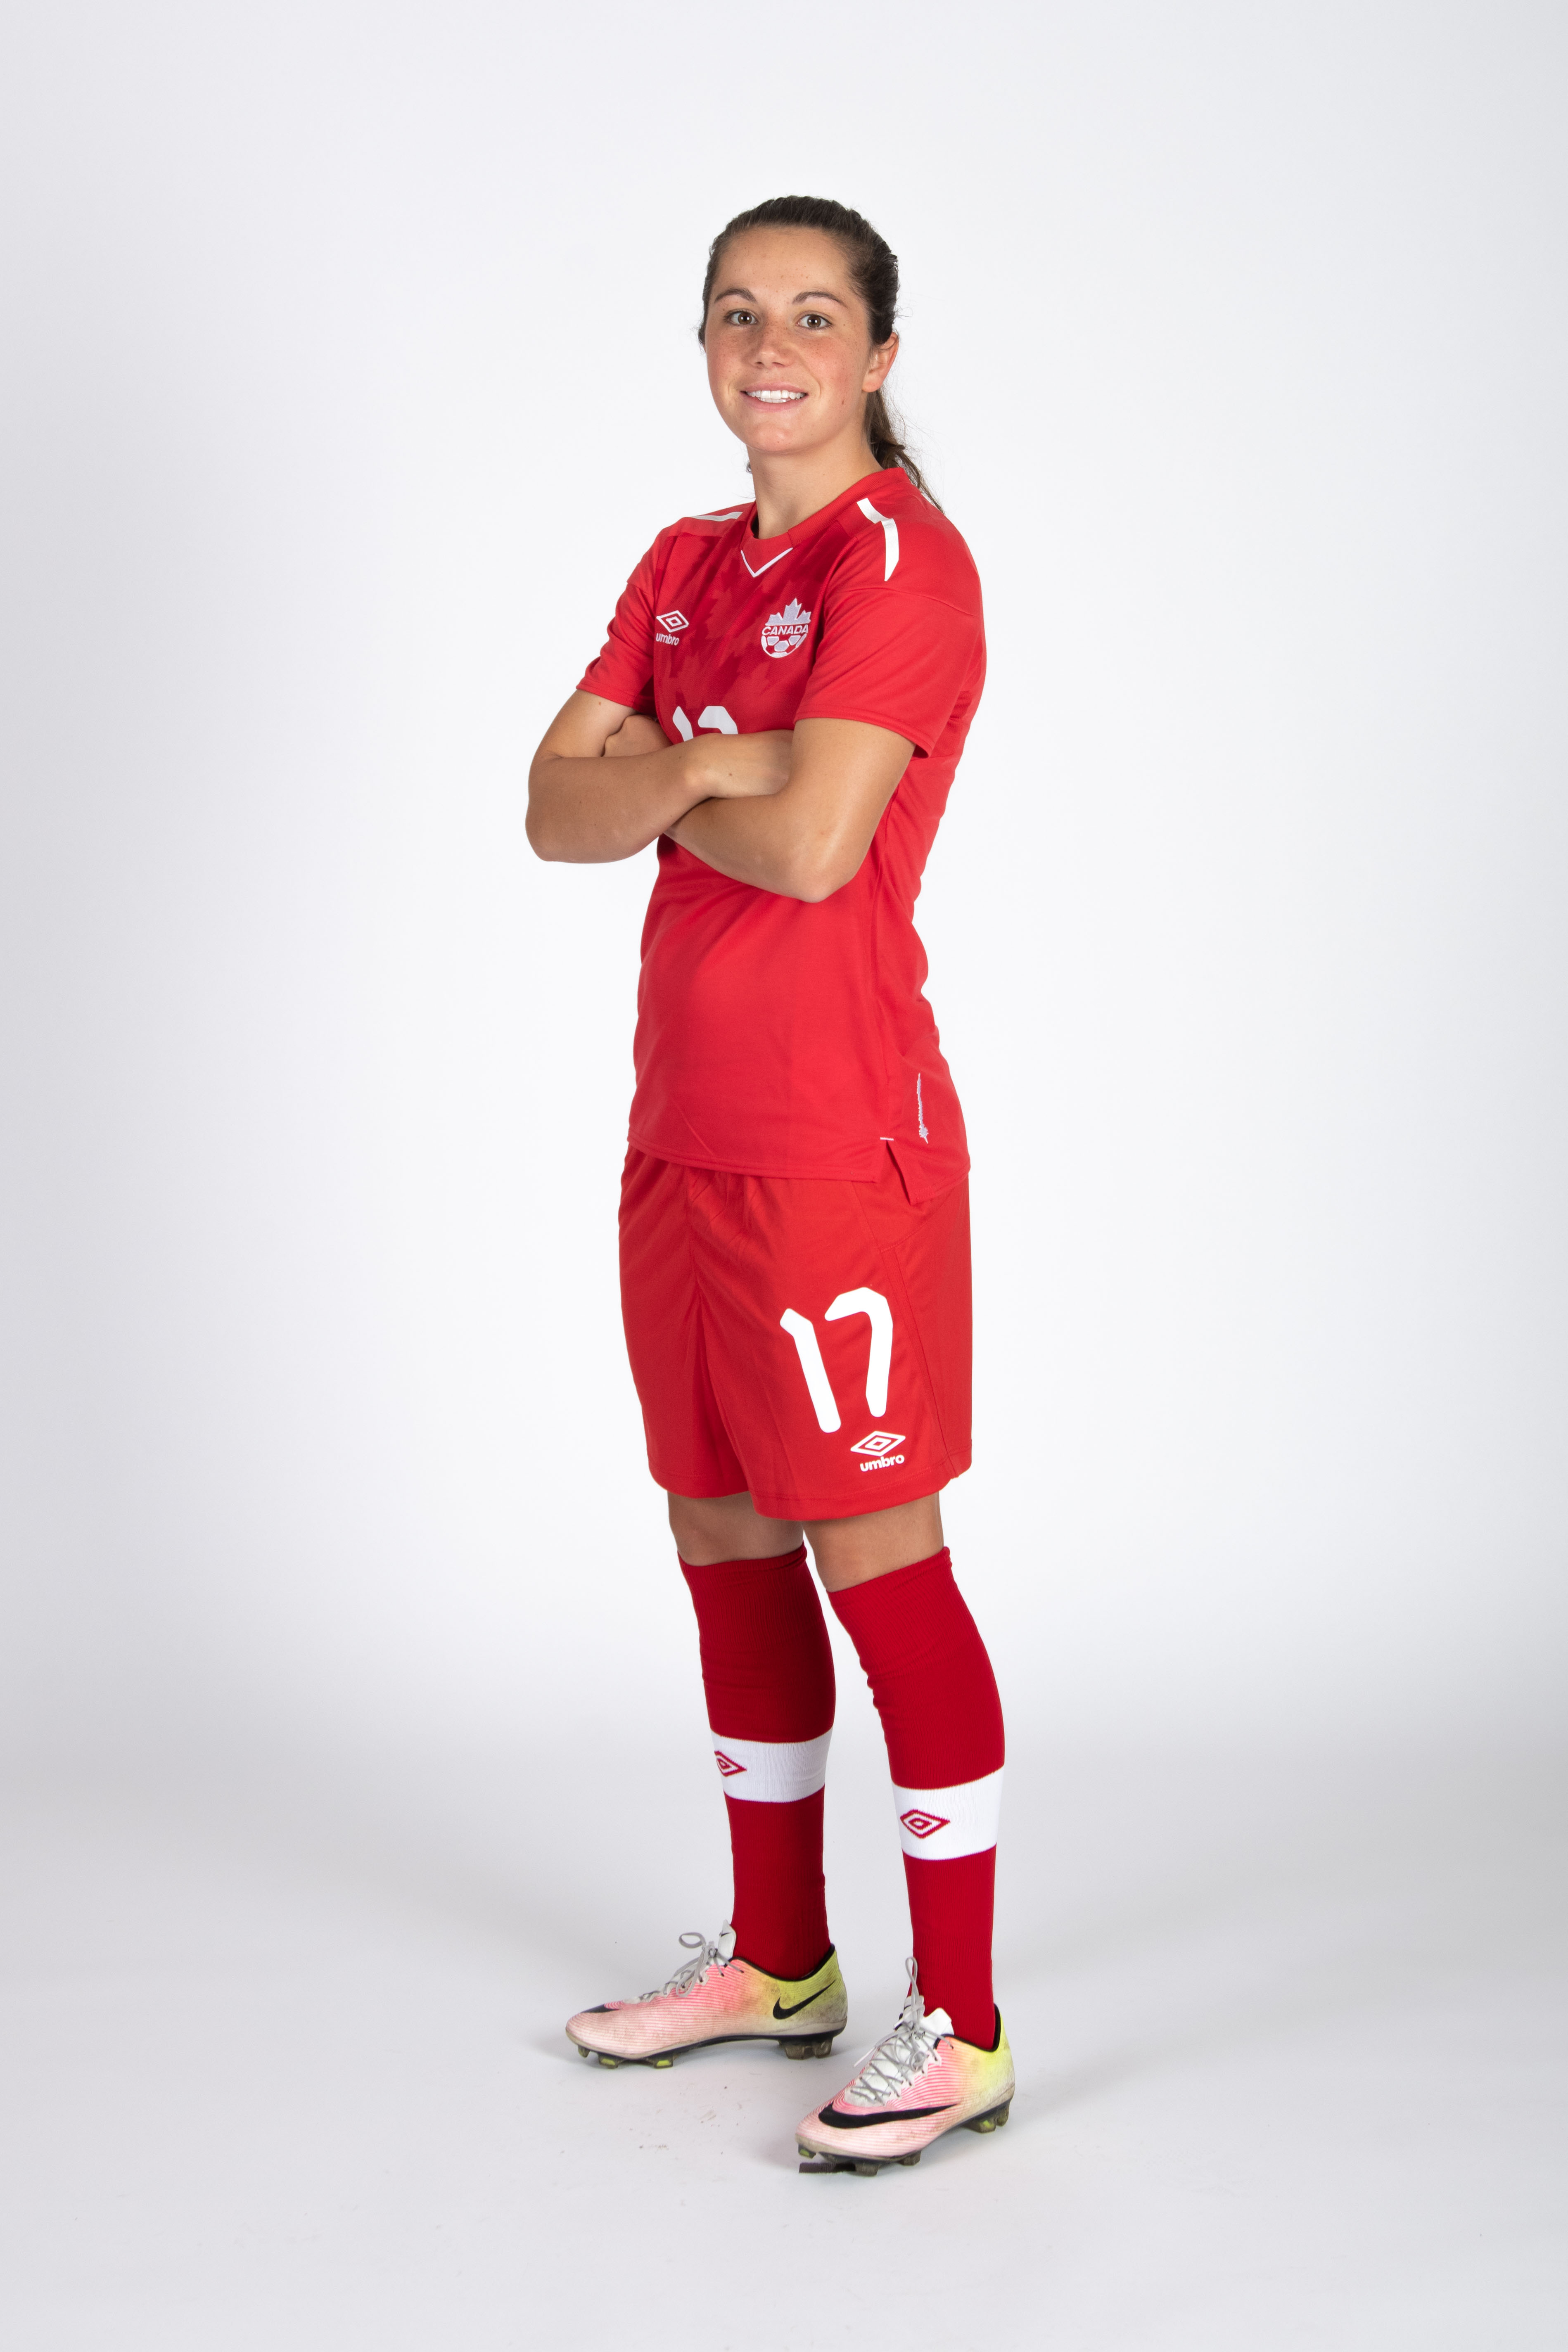 20180604_CANWNT_Fleming_byBazyl27